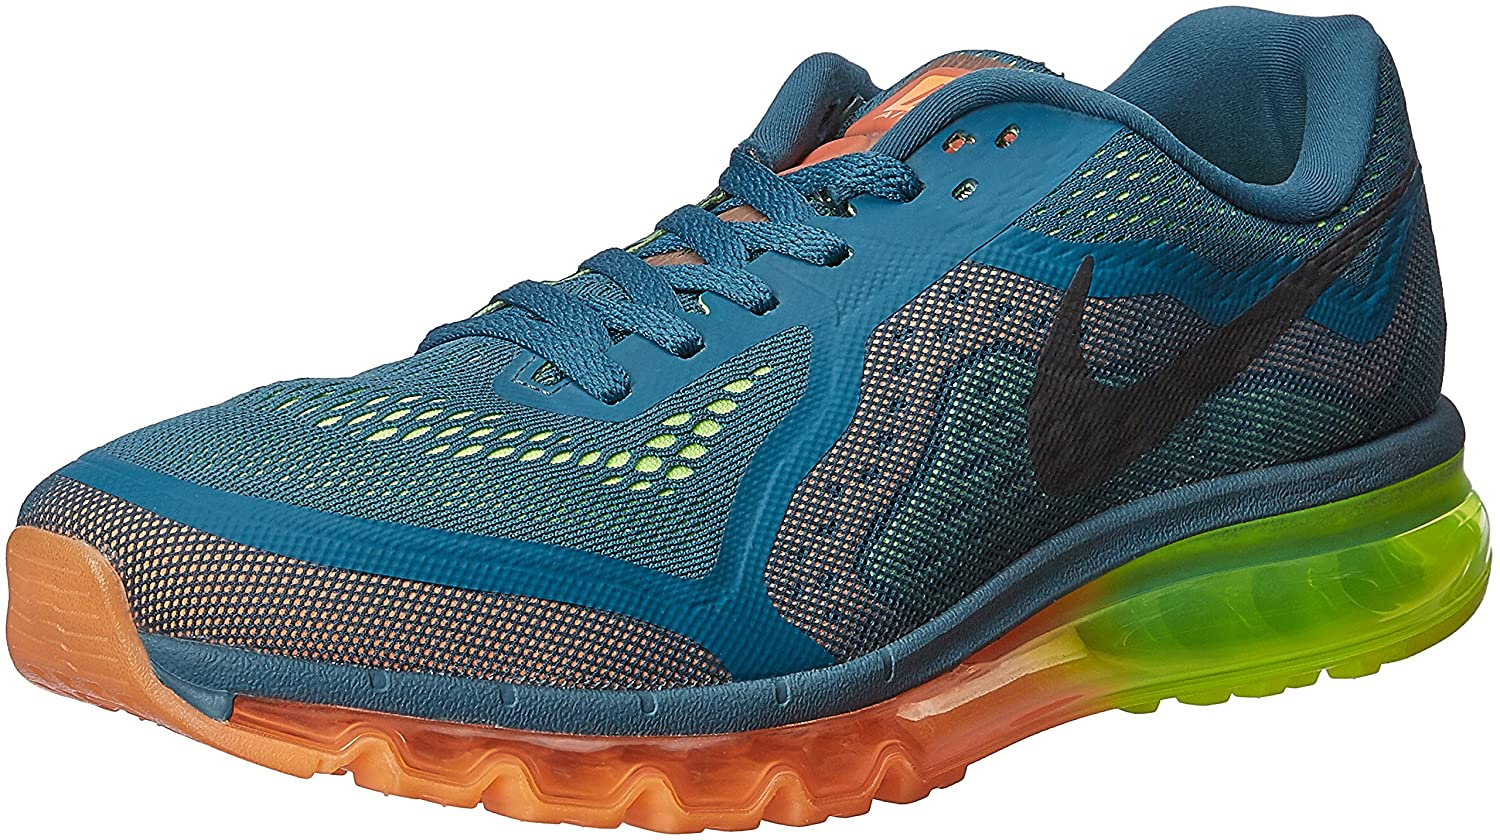 more photos cf78c 4b6f2 Amazon.com   Nike Air Max 2014 Mens Style  621077-308, Night  Factor Blk Atmc Orng Vlt, Size 10.5   Road Running